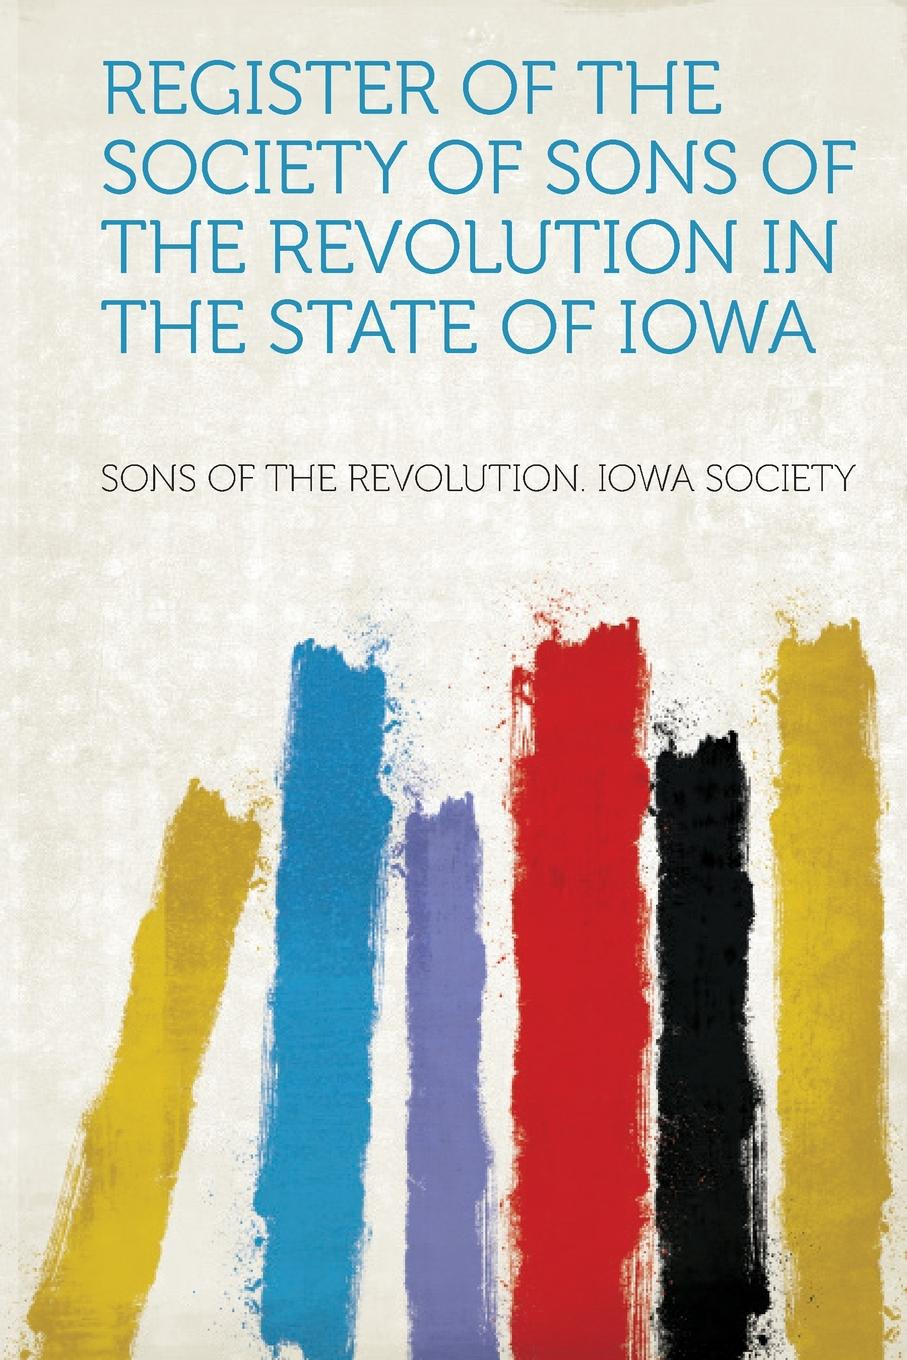 Sons of the Revolution Iowa Society Register of the Society of Sons of the Revolution in the State of Iowa charls w moors indiana society of the sons of the american revolution